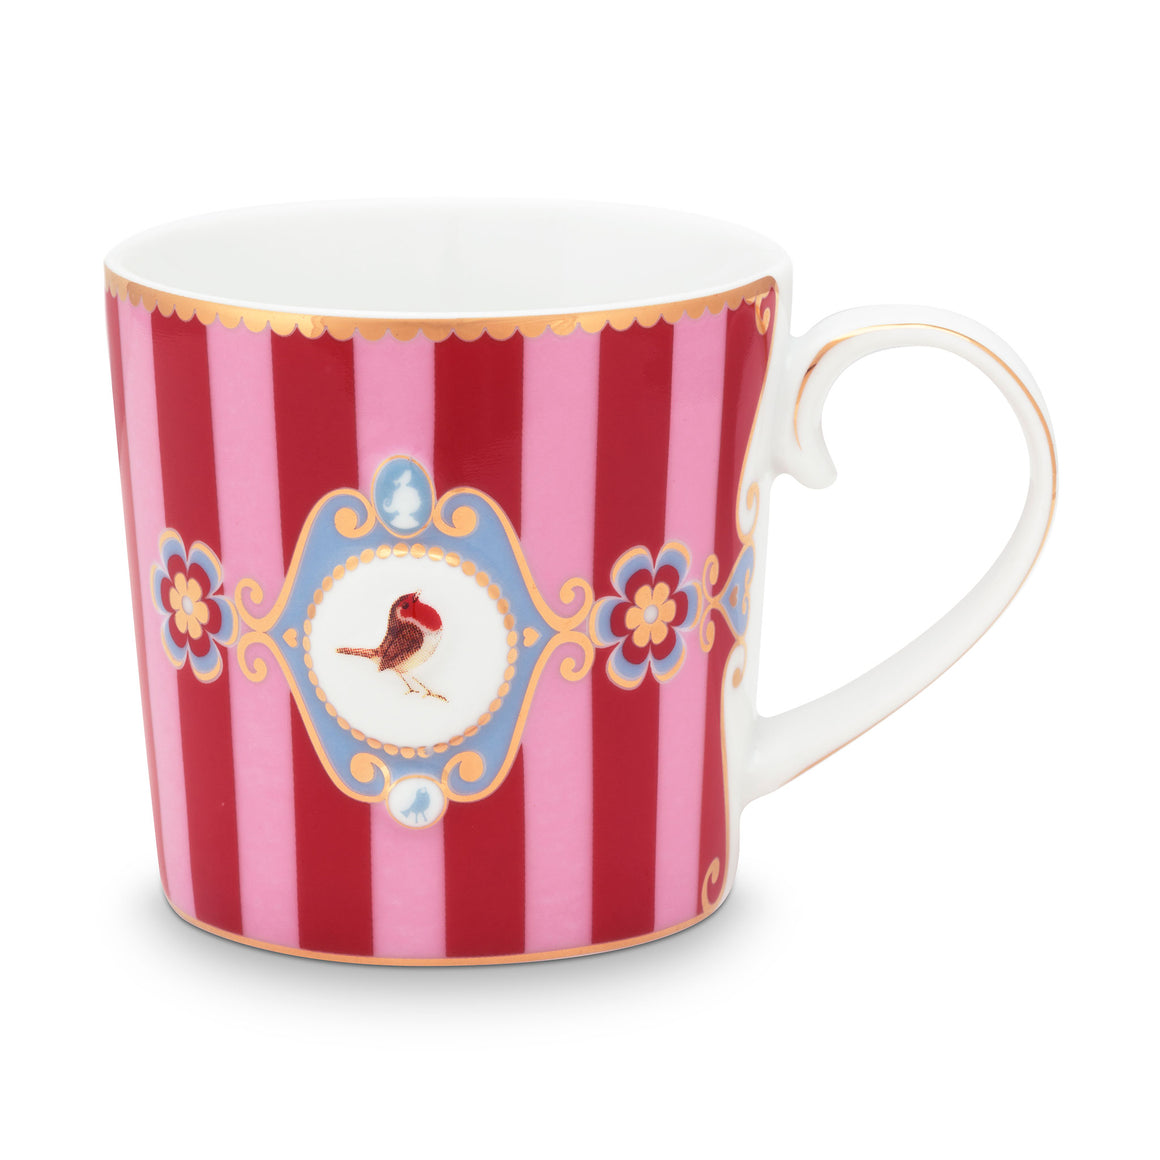 Love Bird Little Mug, Red/Pink